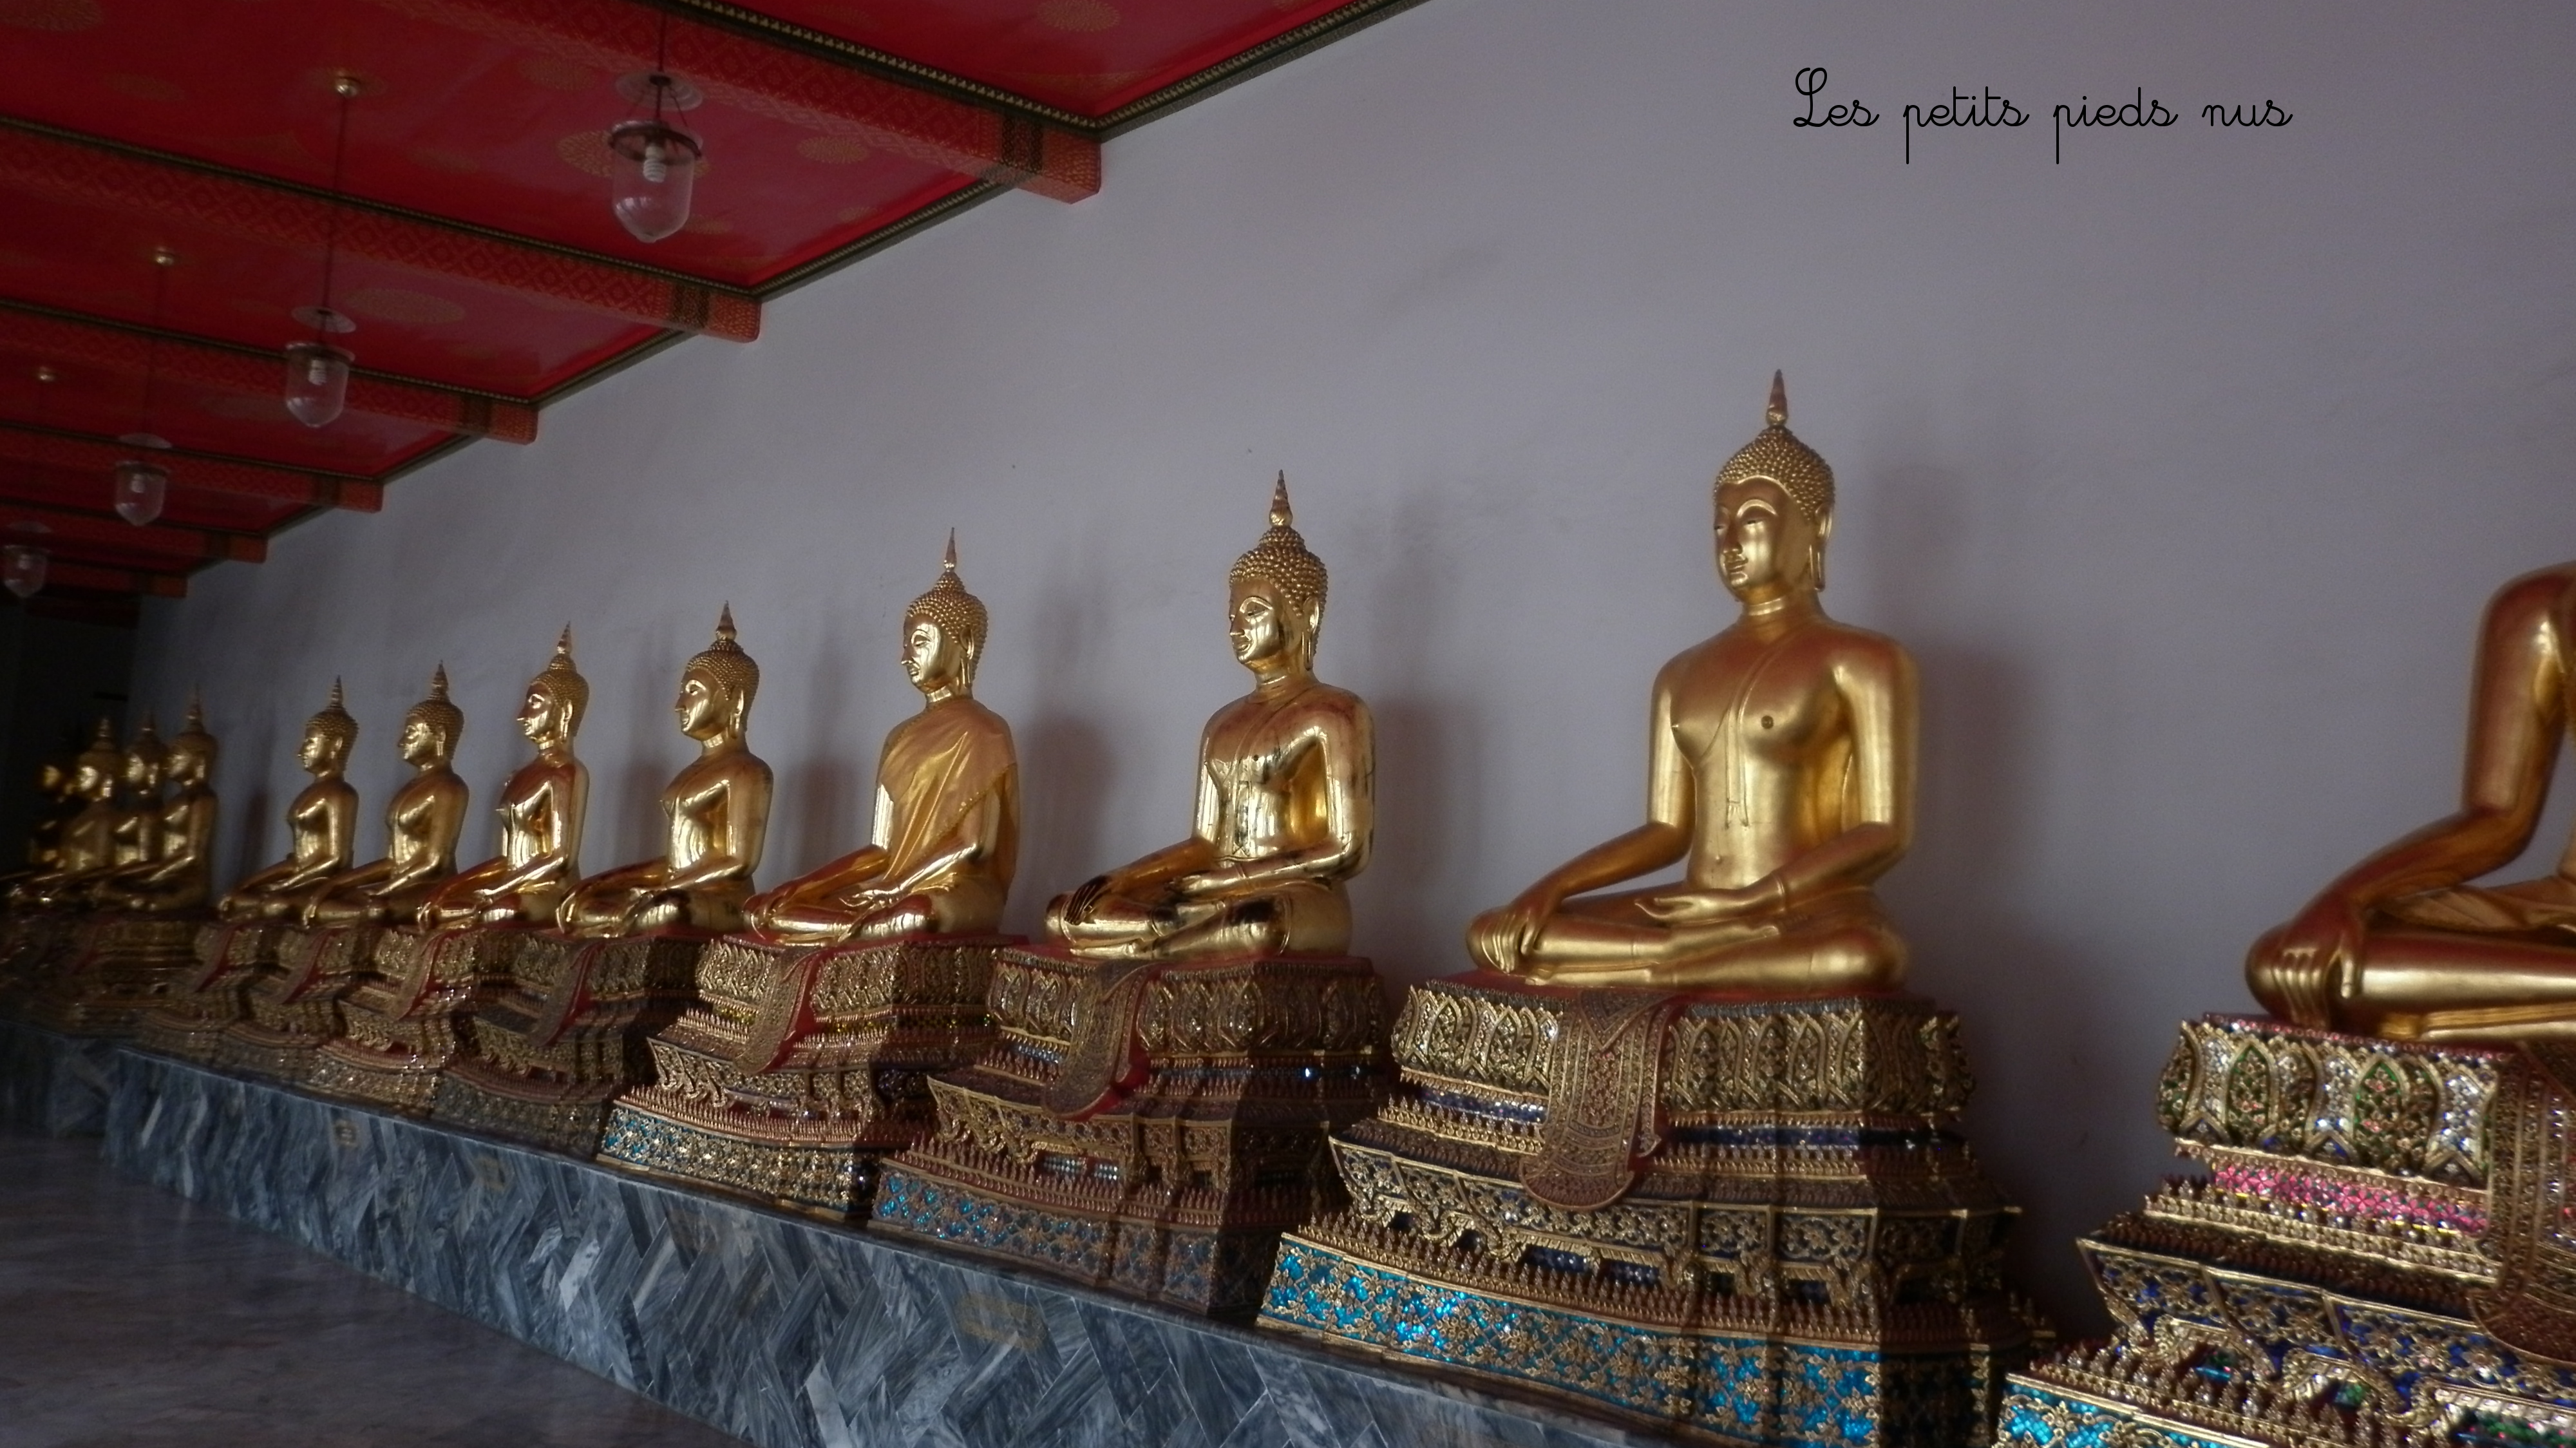 bangkok bouddha couch wat pho les petits pieds nus. Black Bedroom Furniture Sets. Home Design Ideas